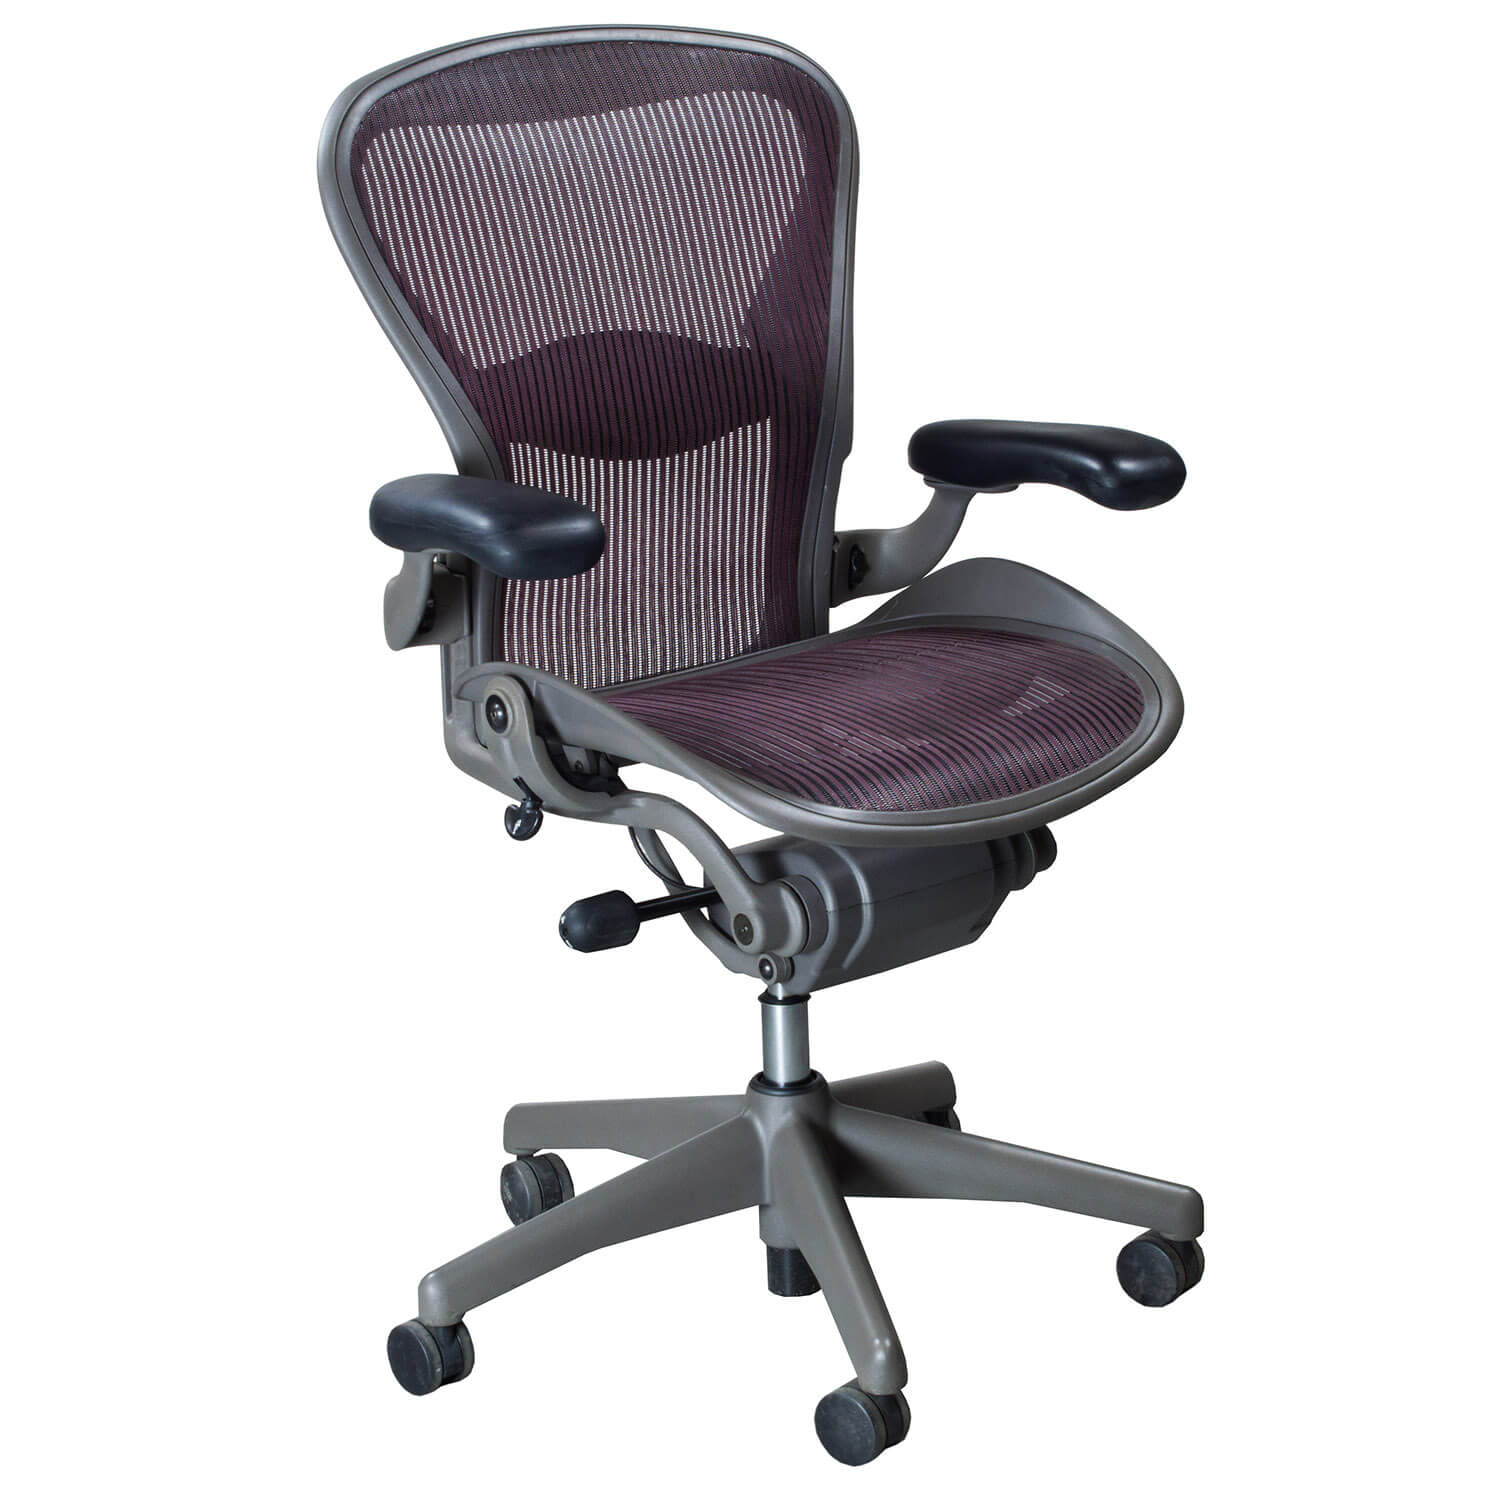 Secondhand Chairs And Tables: Used Office Furniture For Sale By Cubicles.com